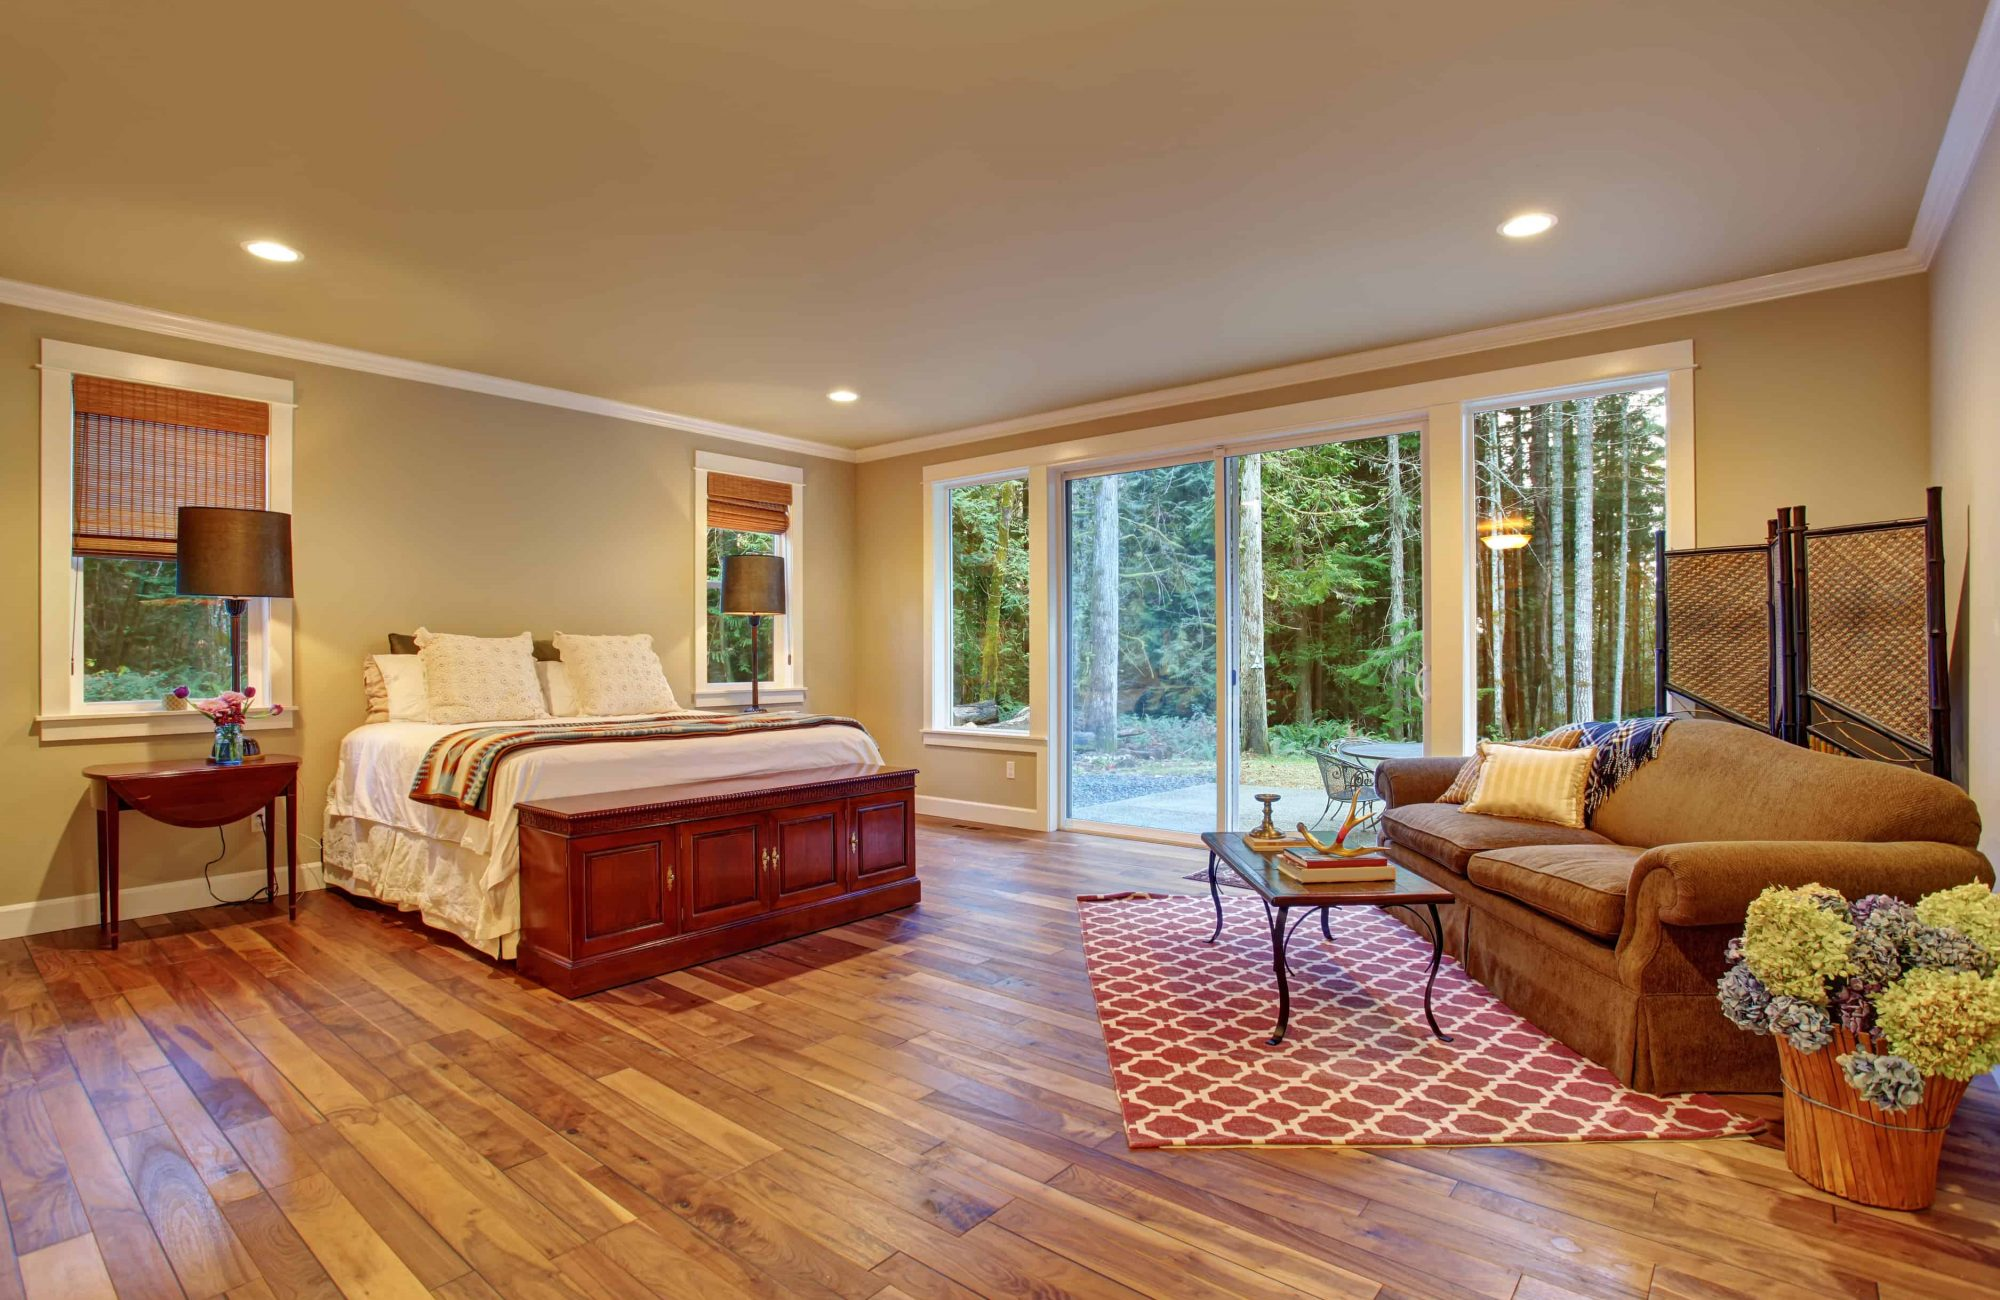 Benefits of Wood Flooring vs. Carpeting - Denver Dustless